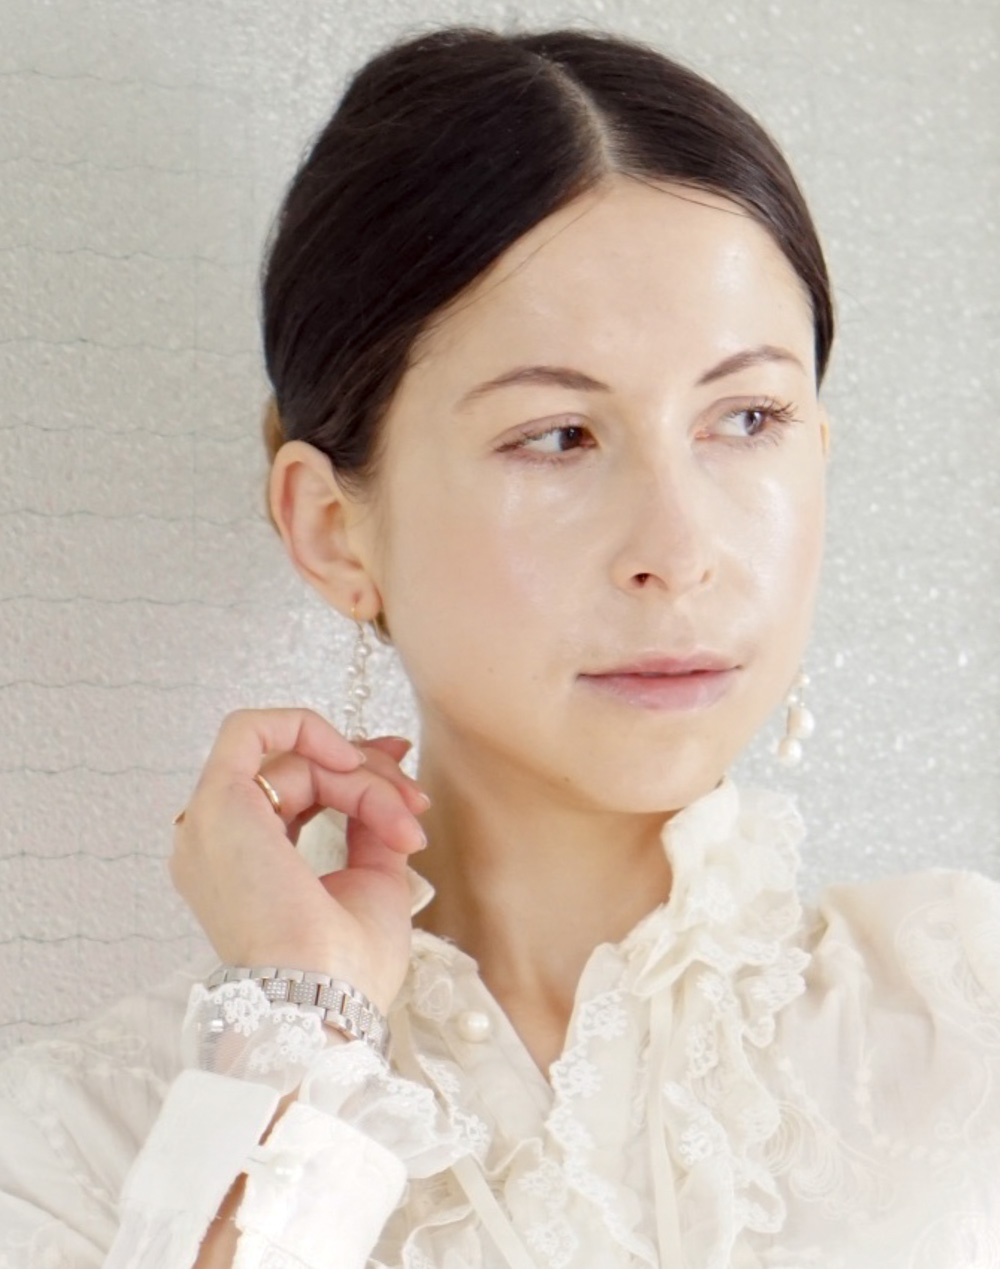 Victorian blouse and pearl earrings